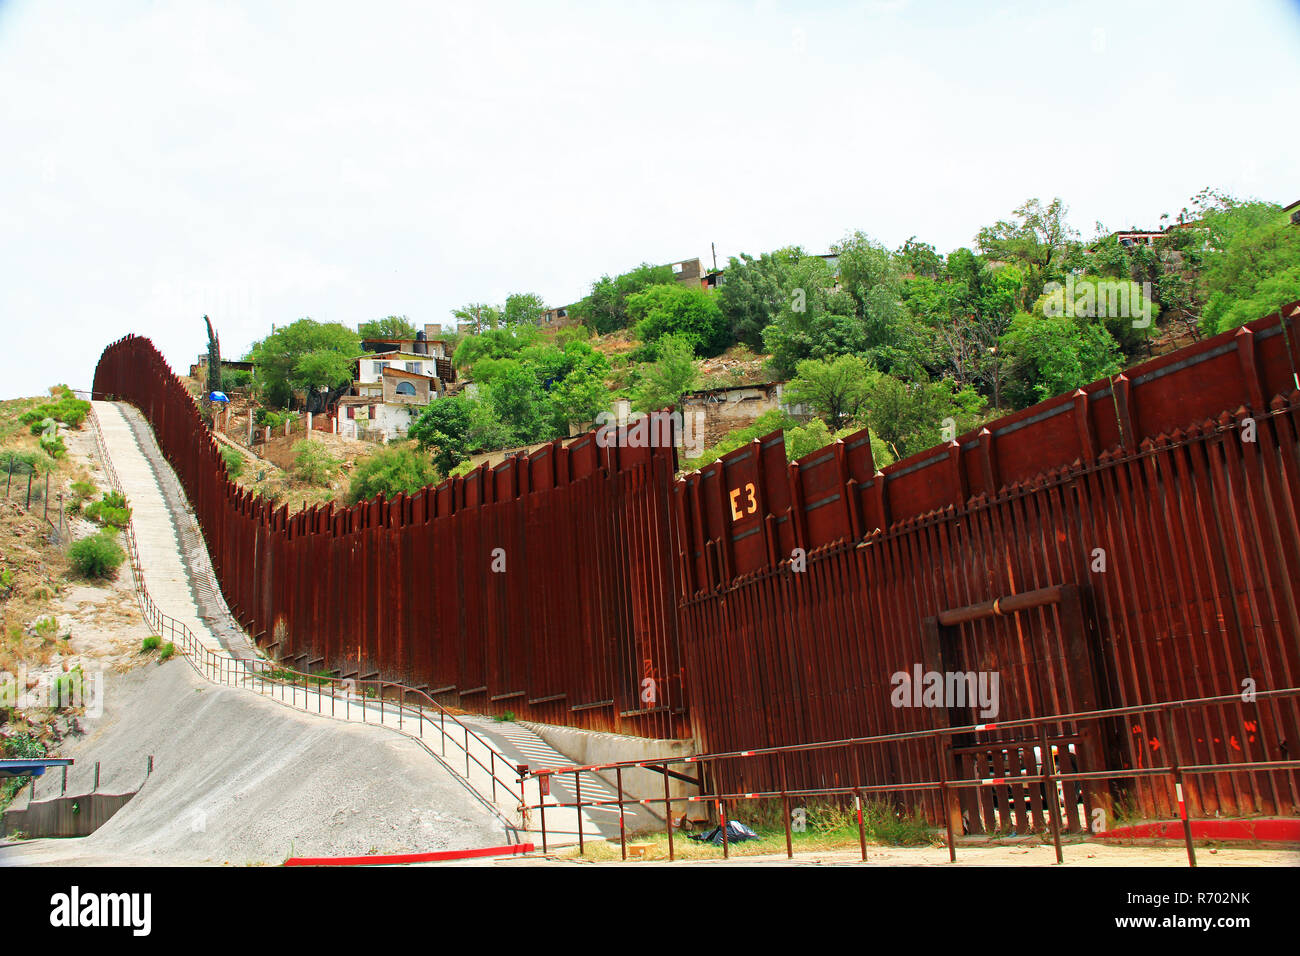 Border Fence Separating the US from Mexico in Nogales, Arizona Stock Photo